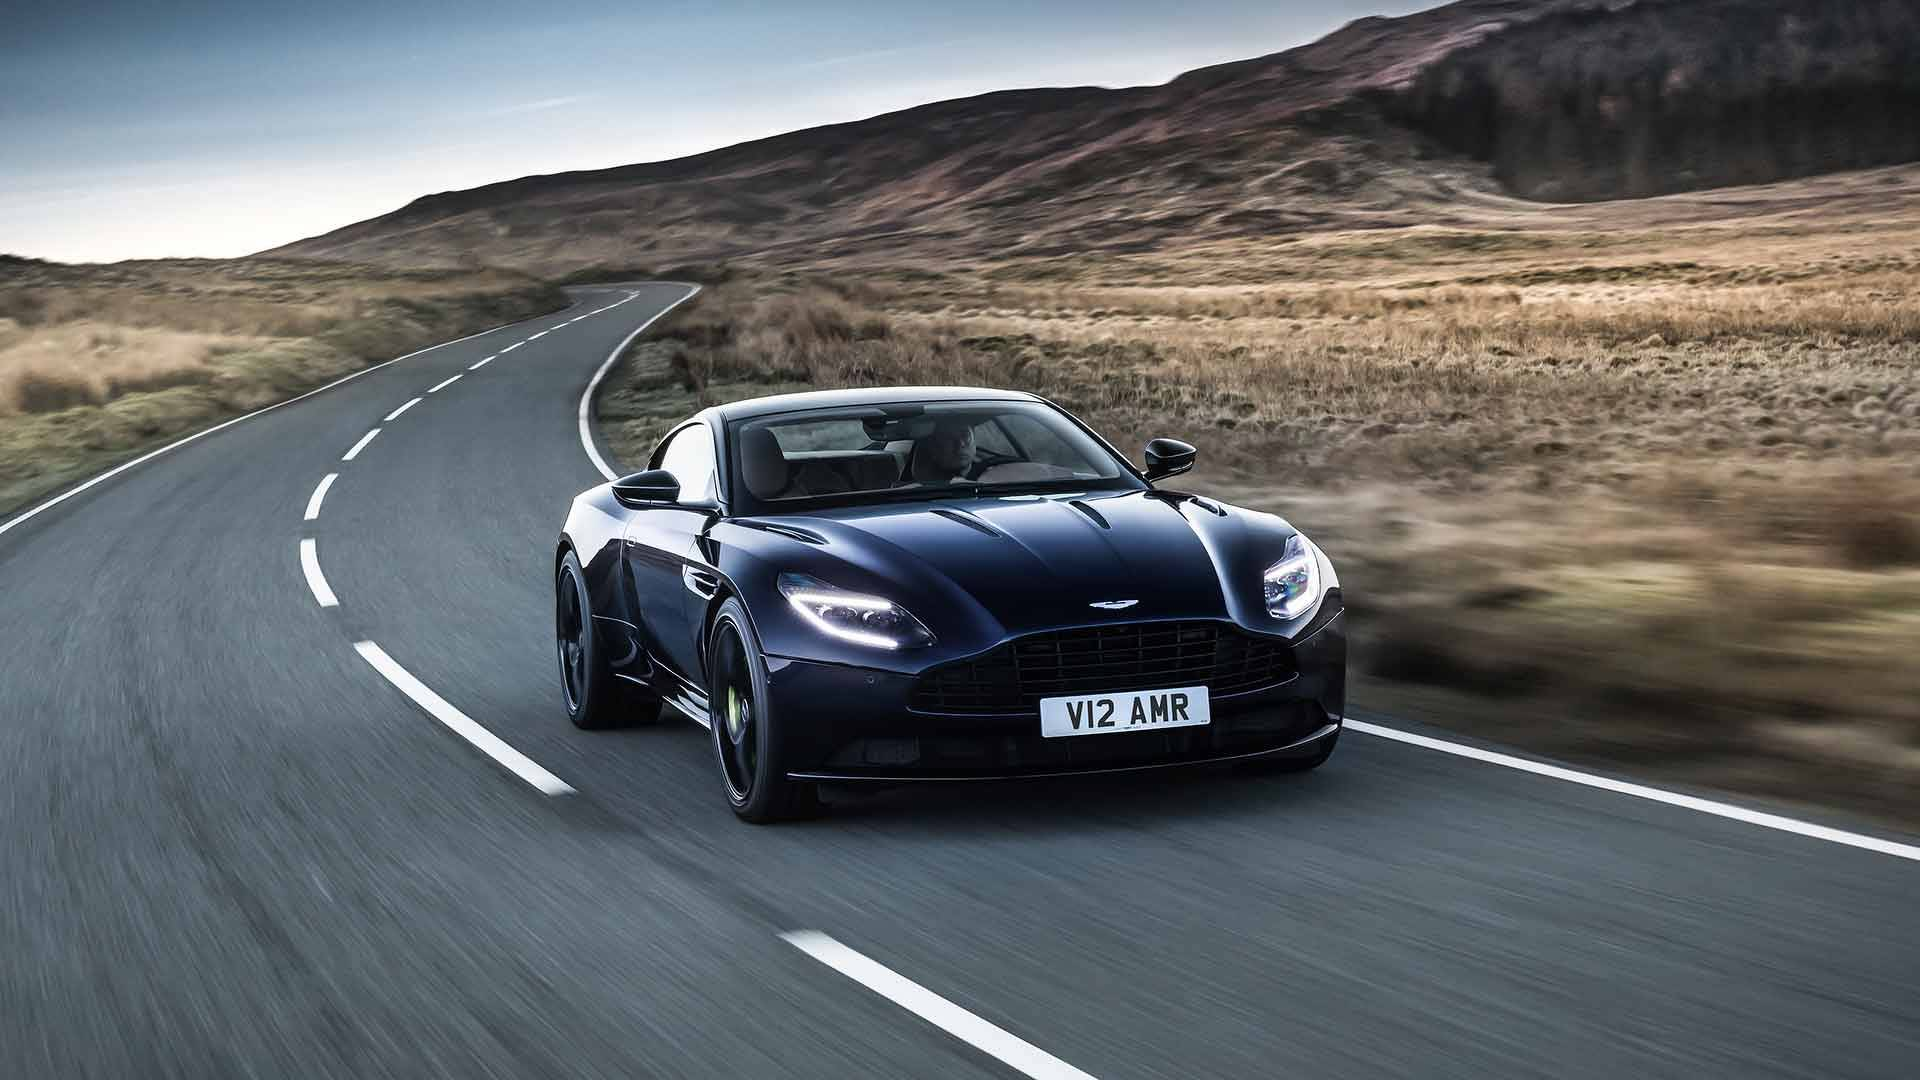 Aston Martin DB Gets More Power And AMR Treatment Autodevot - Aston martin db 11